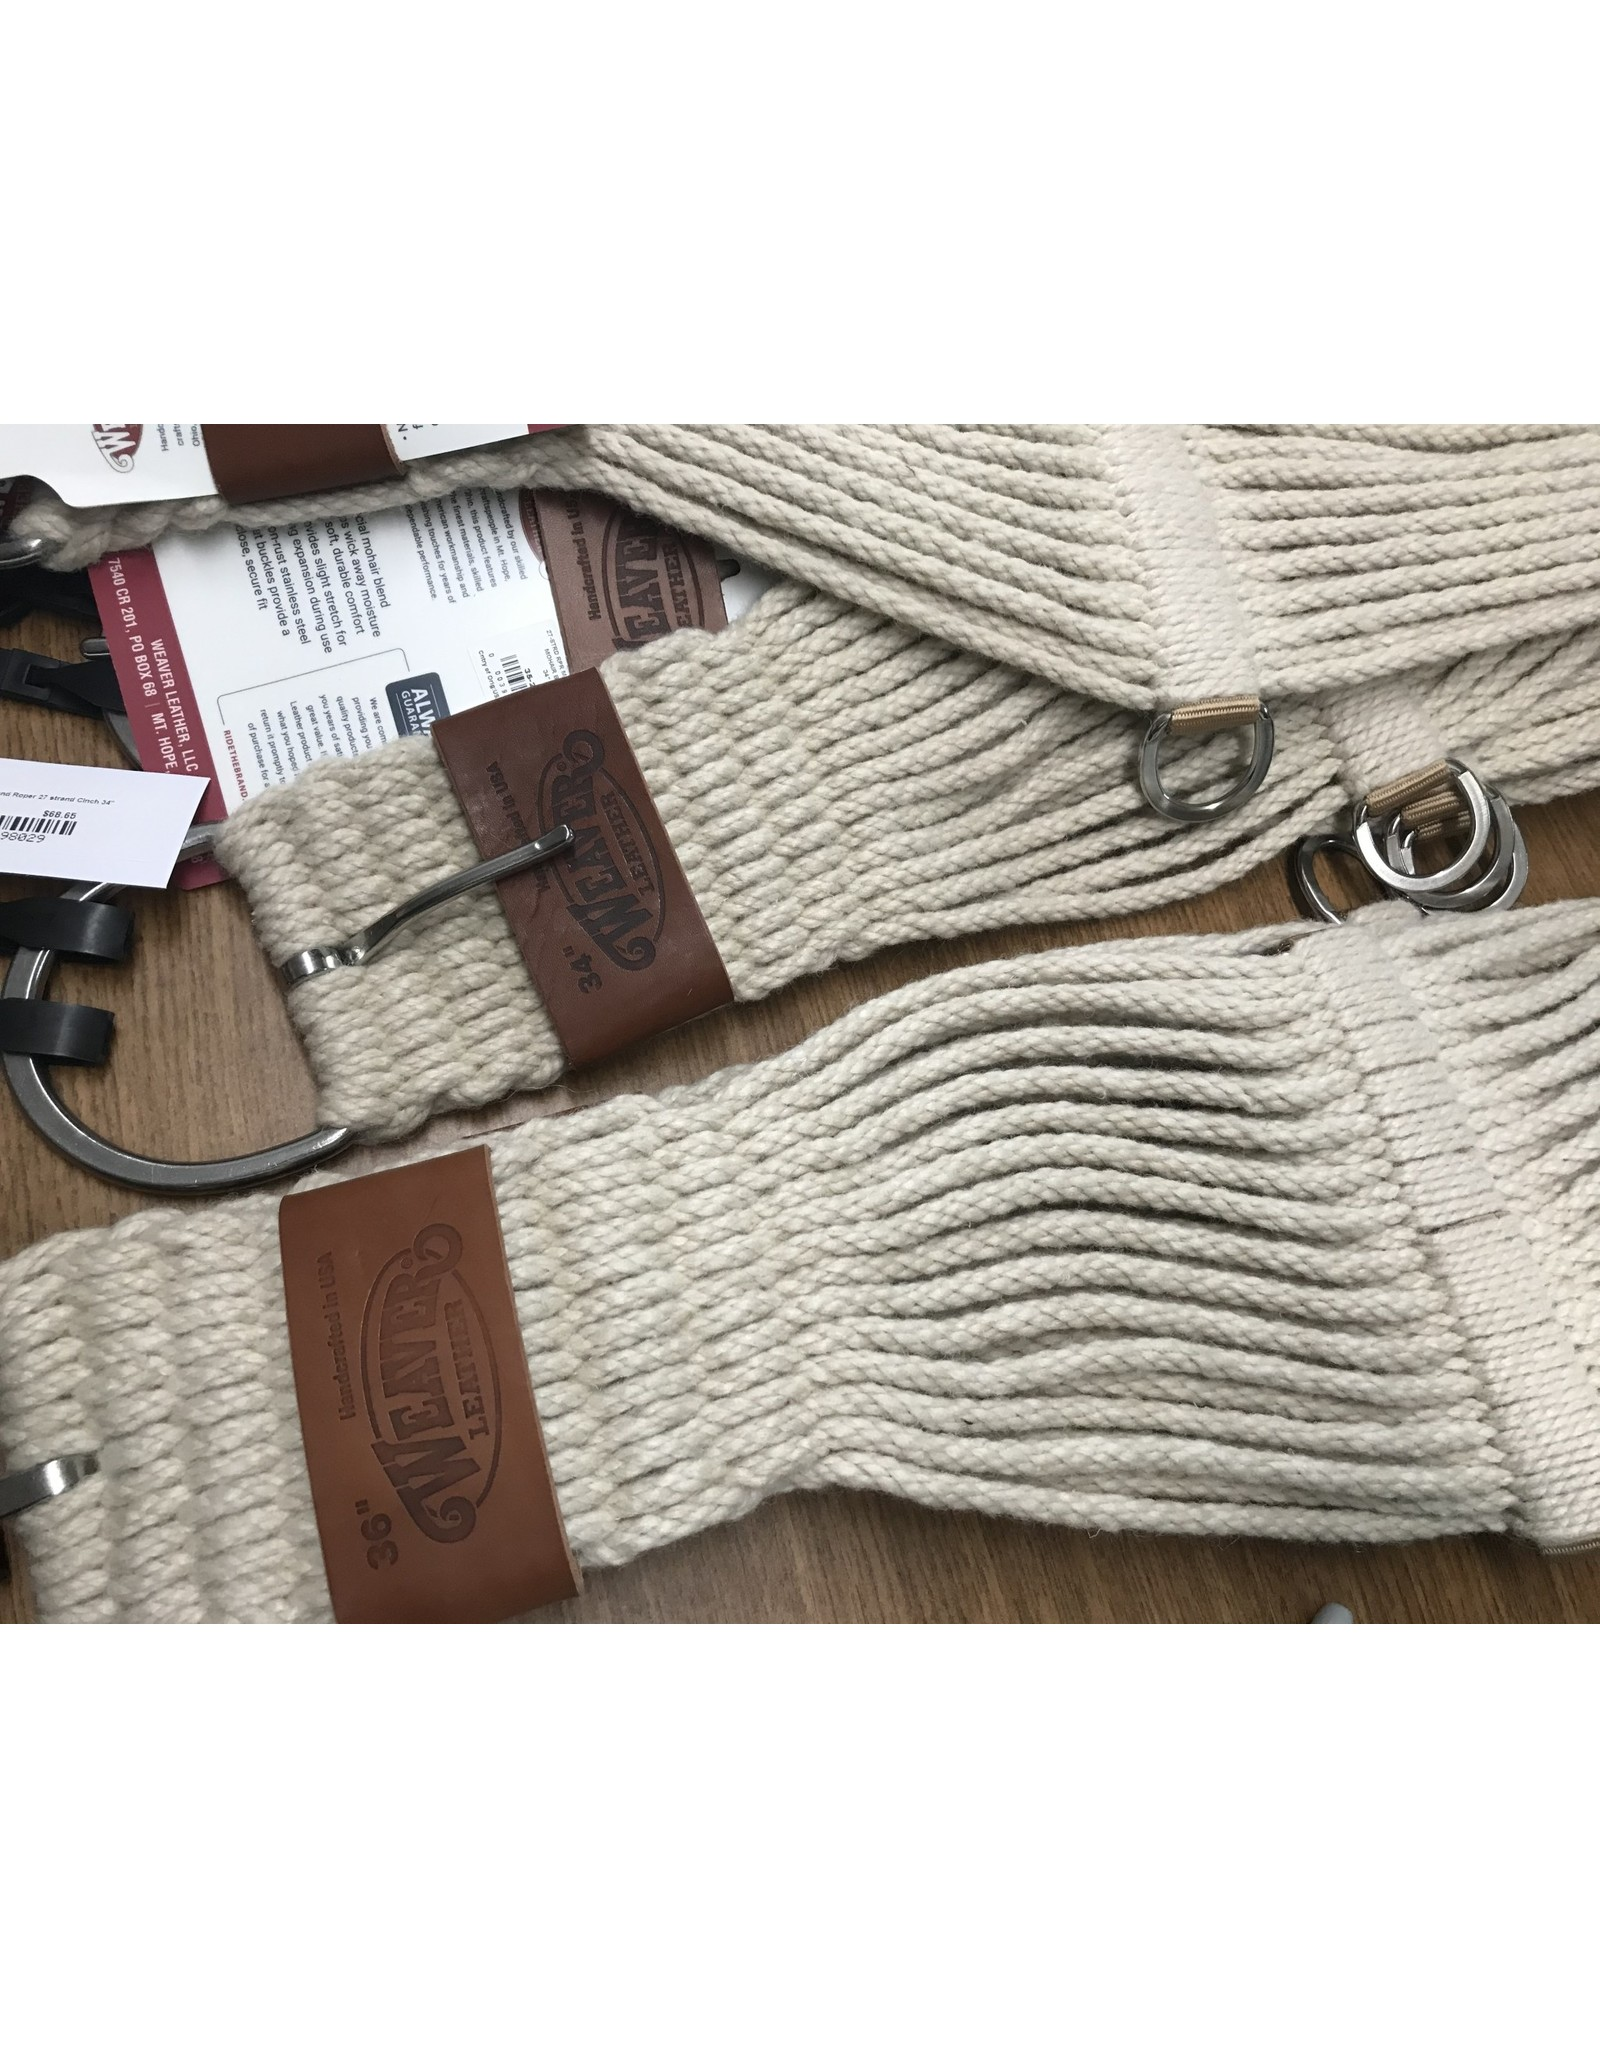 CIN* Mohair Blend Roper 27 strand Cinch 36''       35-2416-36 AAAA*P very nice basic roper  (came with a leather cinch holder, but Weaver pic shows plain)